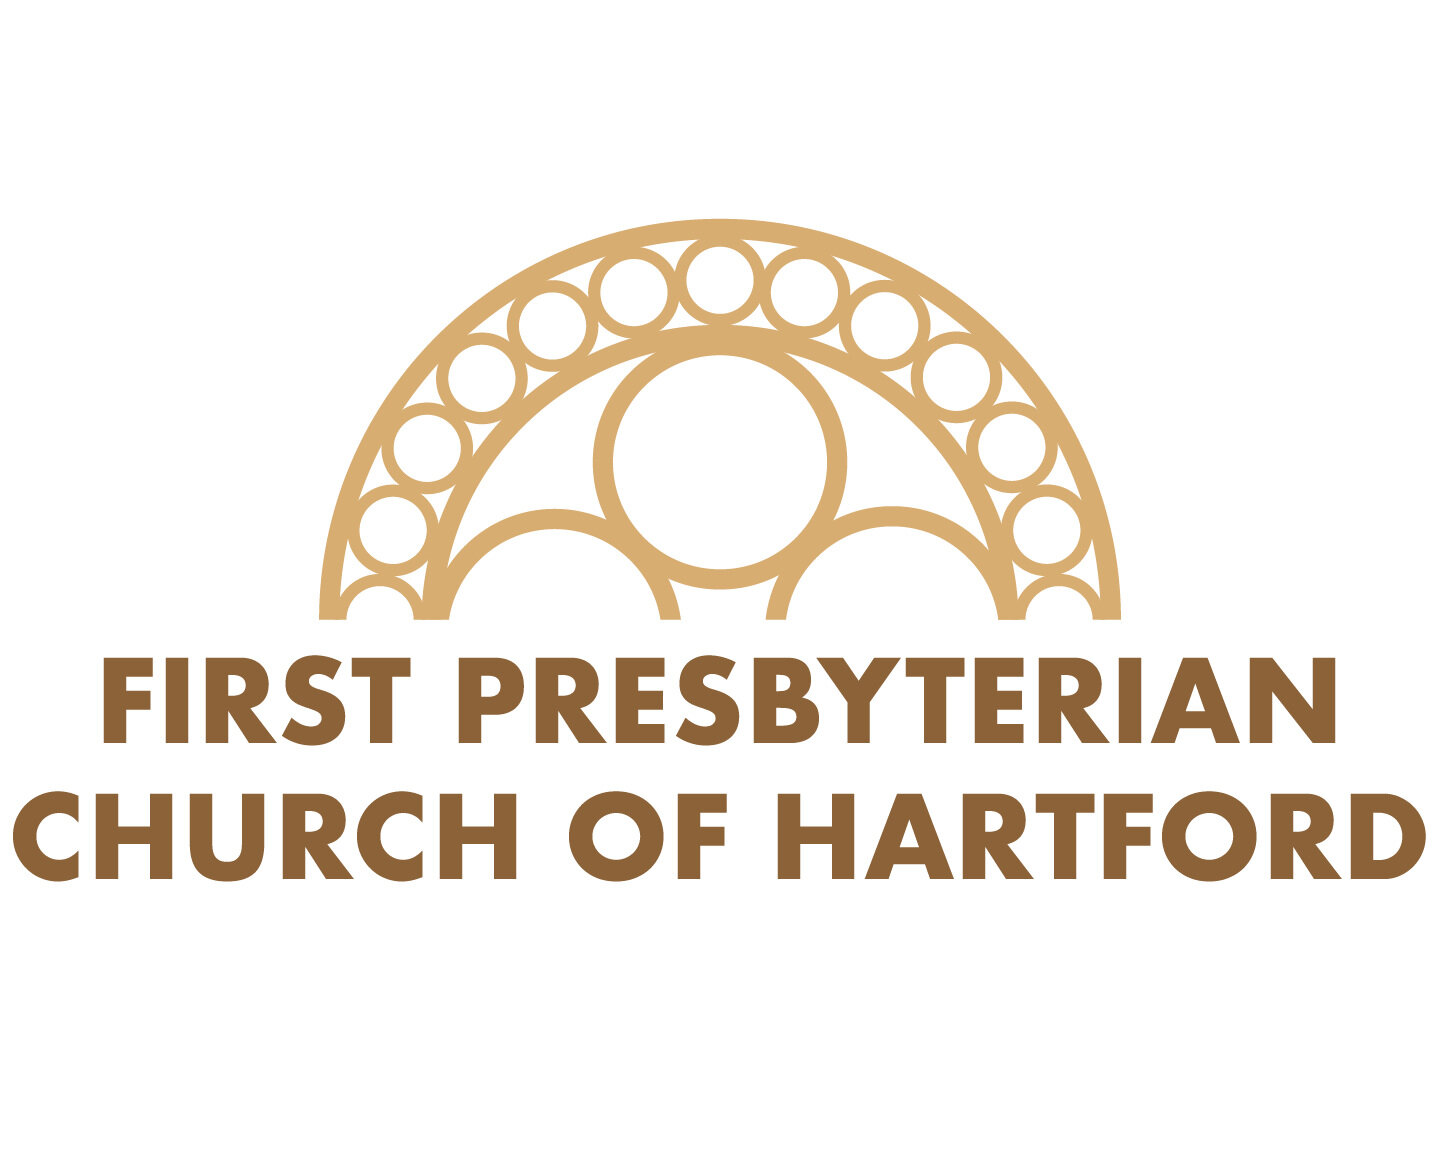 First Presbyterian Church of Hartford